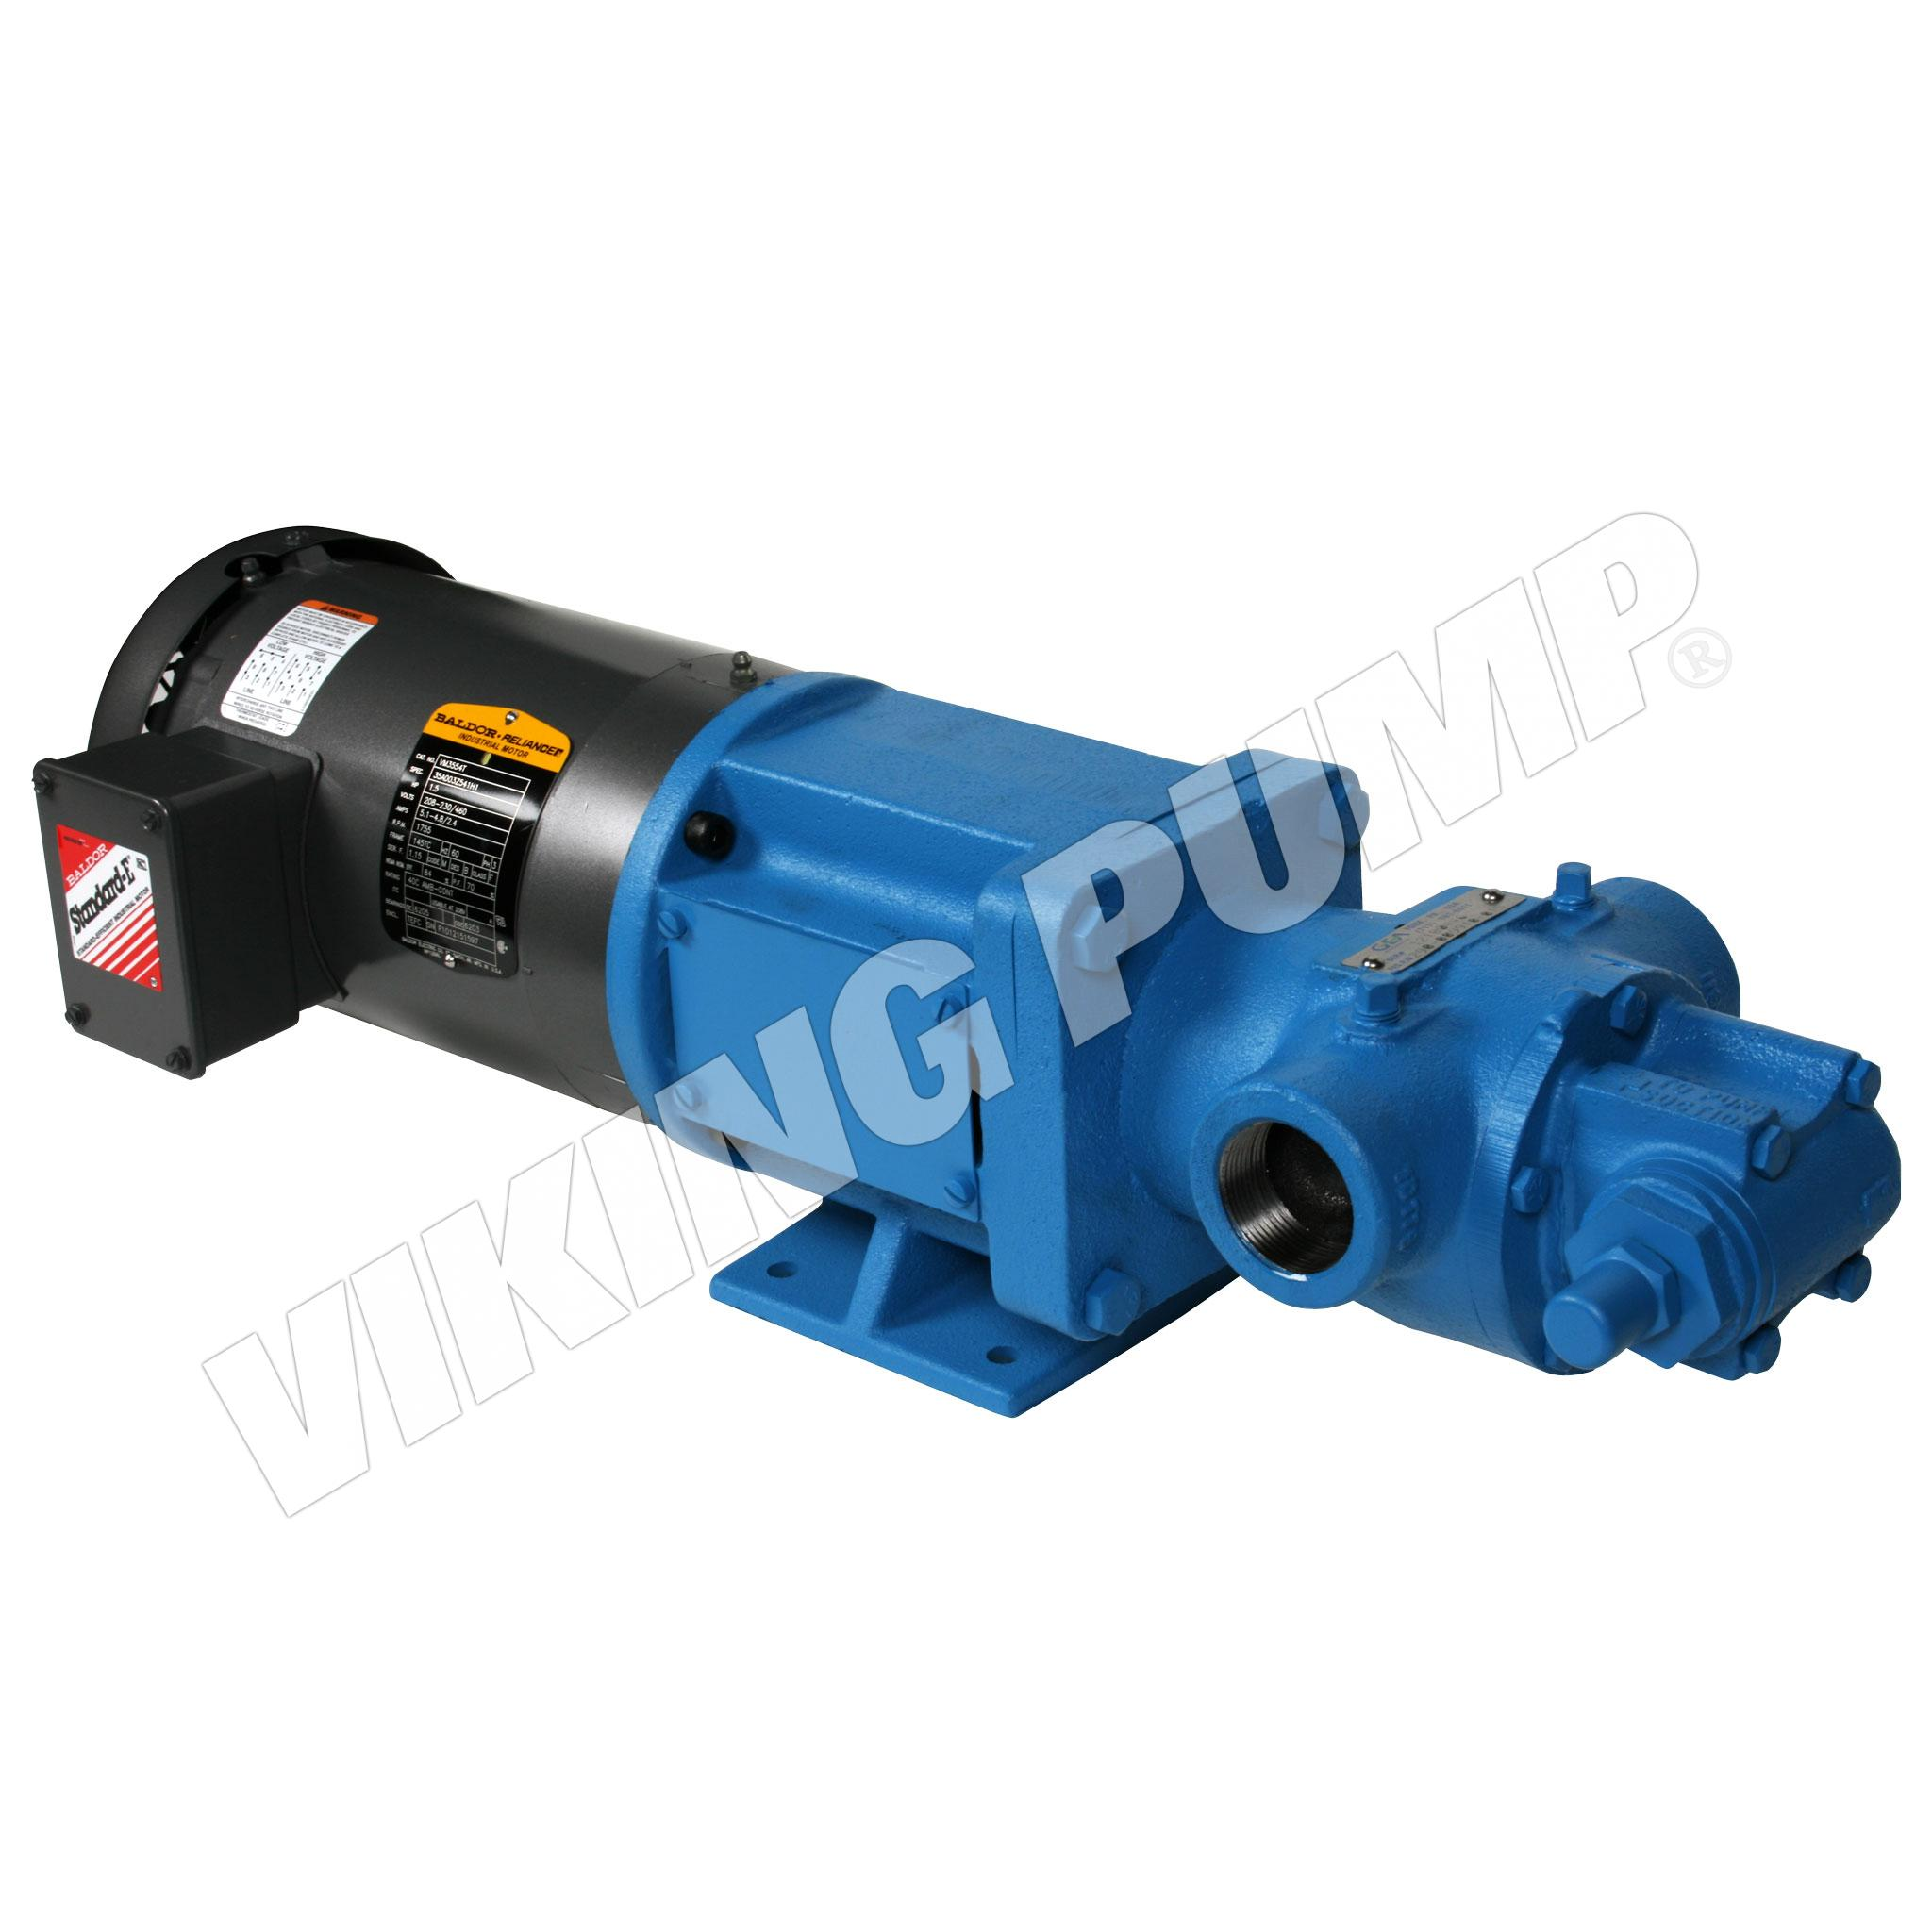 Model H495, Mechanical Seal, Relief Valve, M Drive Pump Unit